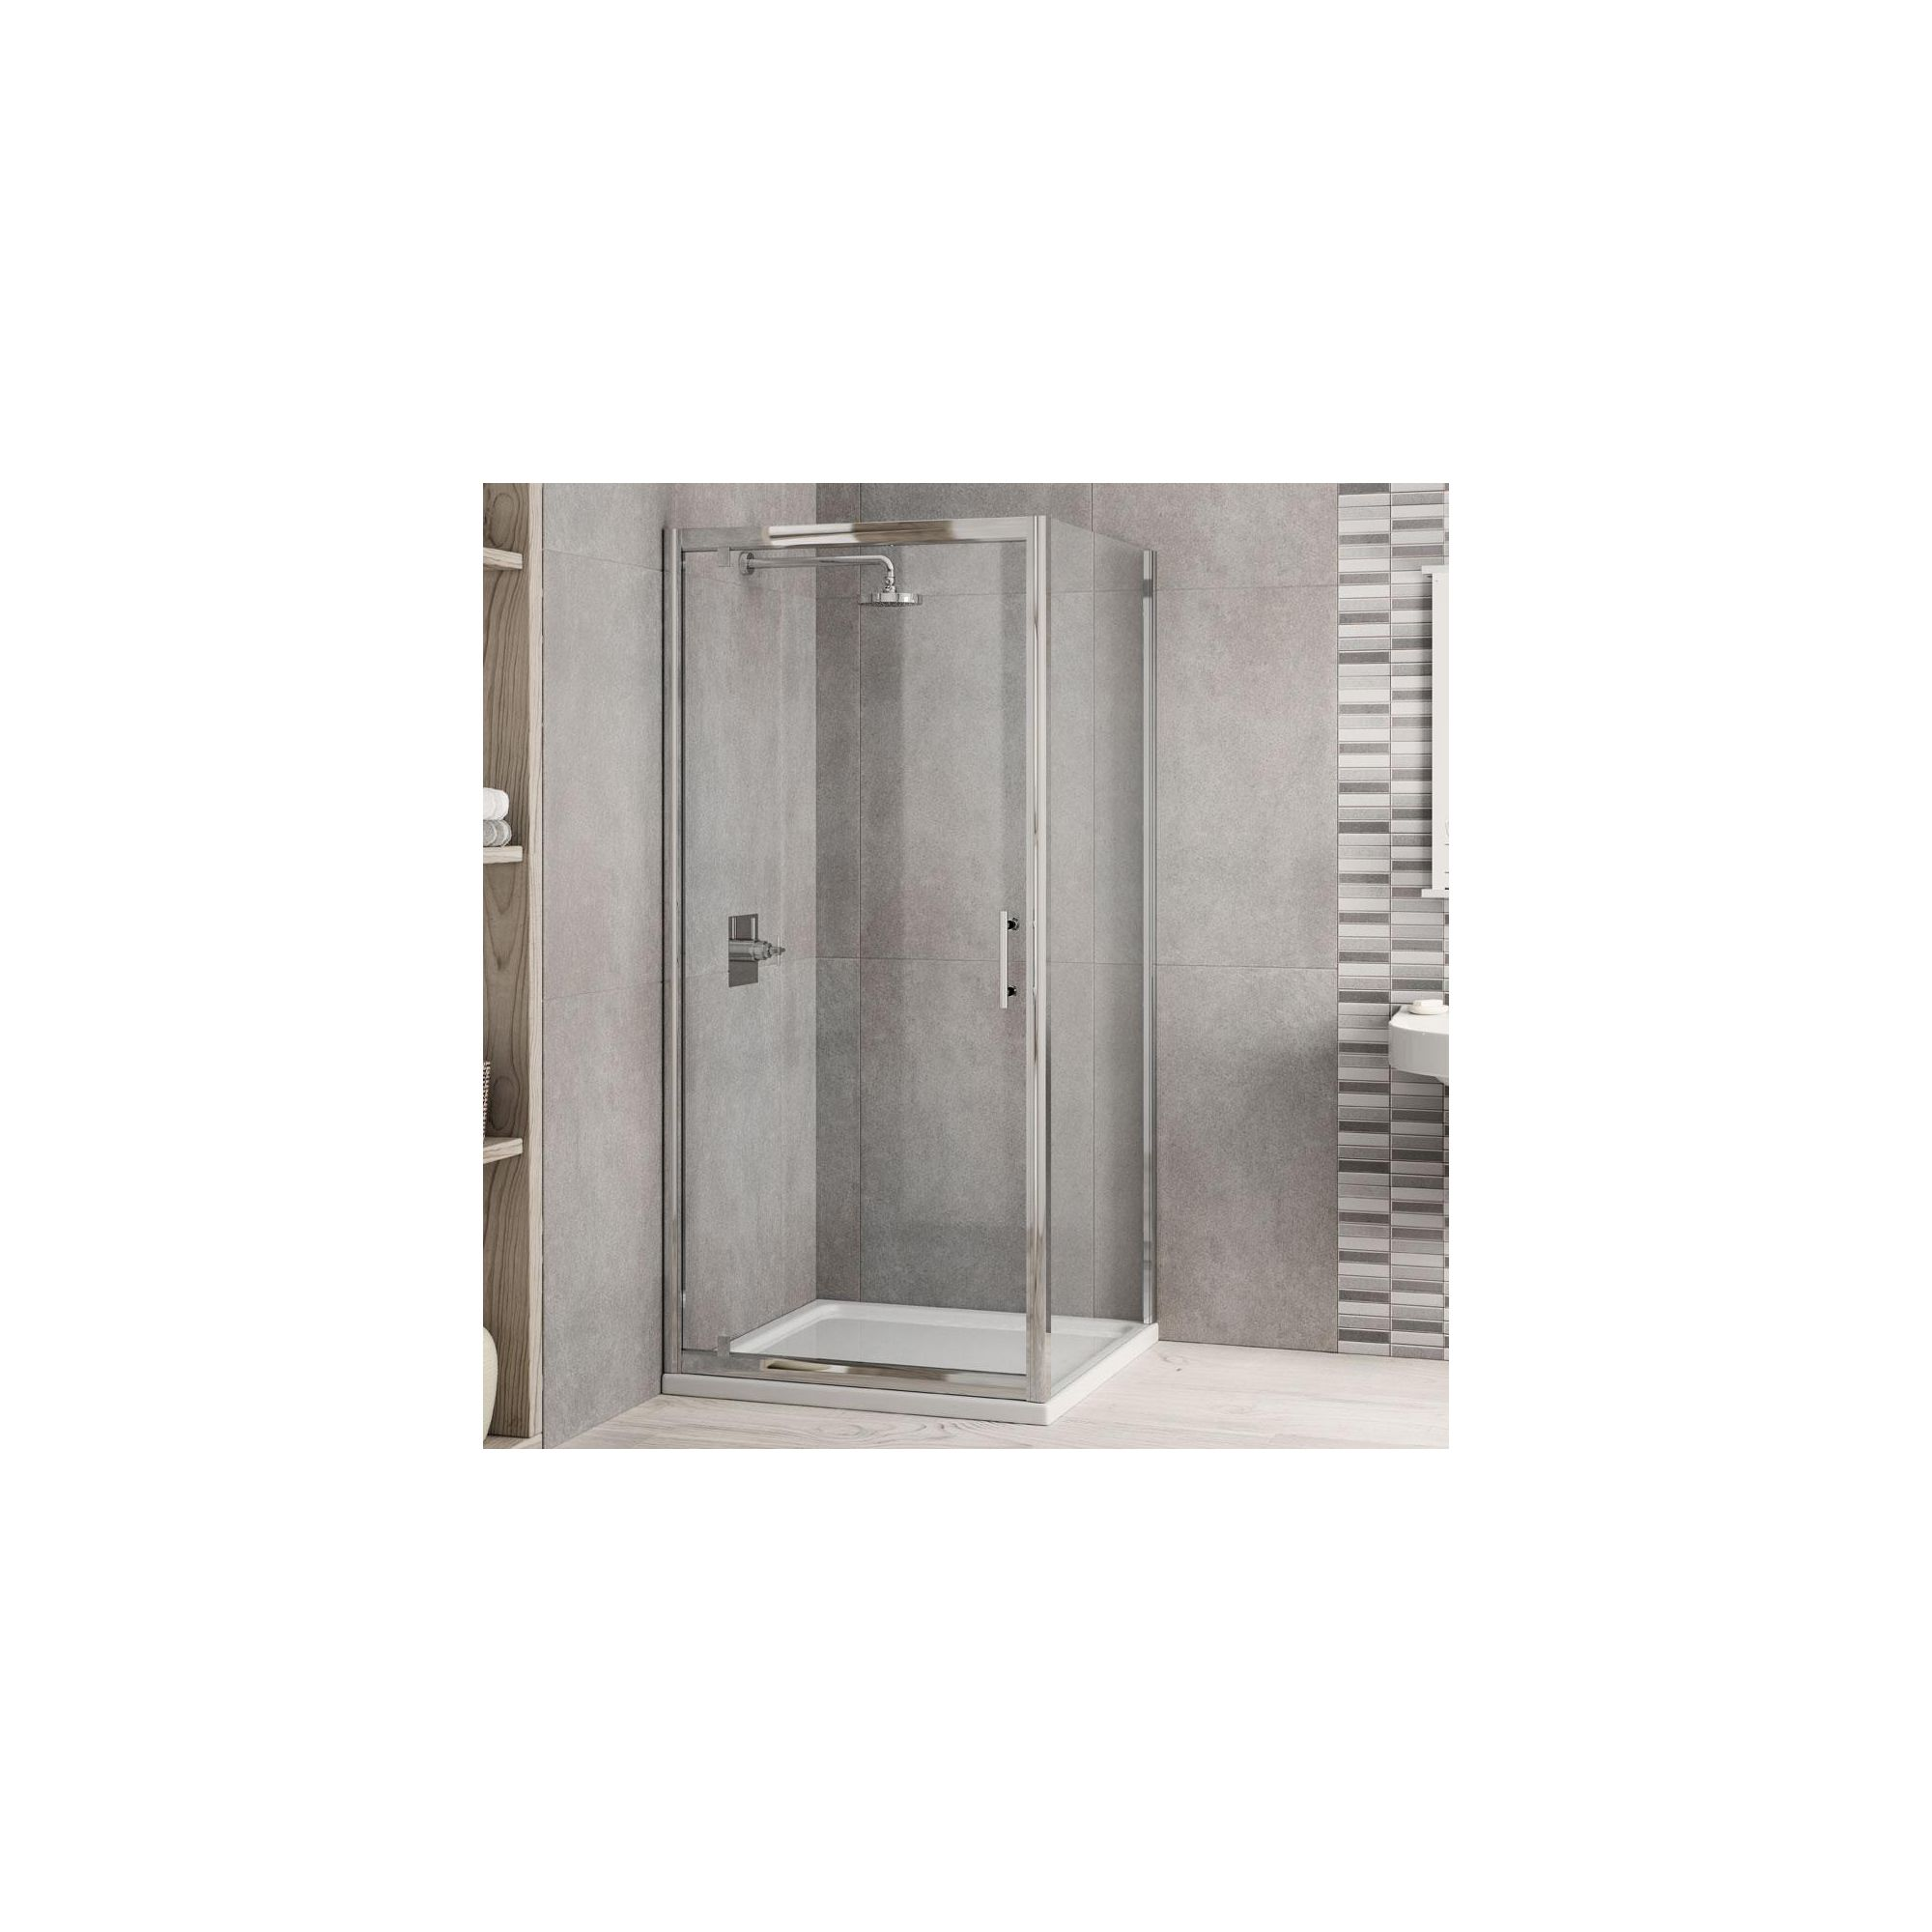 Elemis Inspire Pivot Door Shower Enclosure, 1000mm x 800mm, 6mm Glass, Low Profile Tray at Tesco Direct